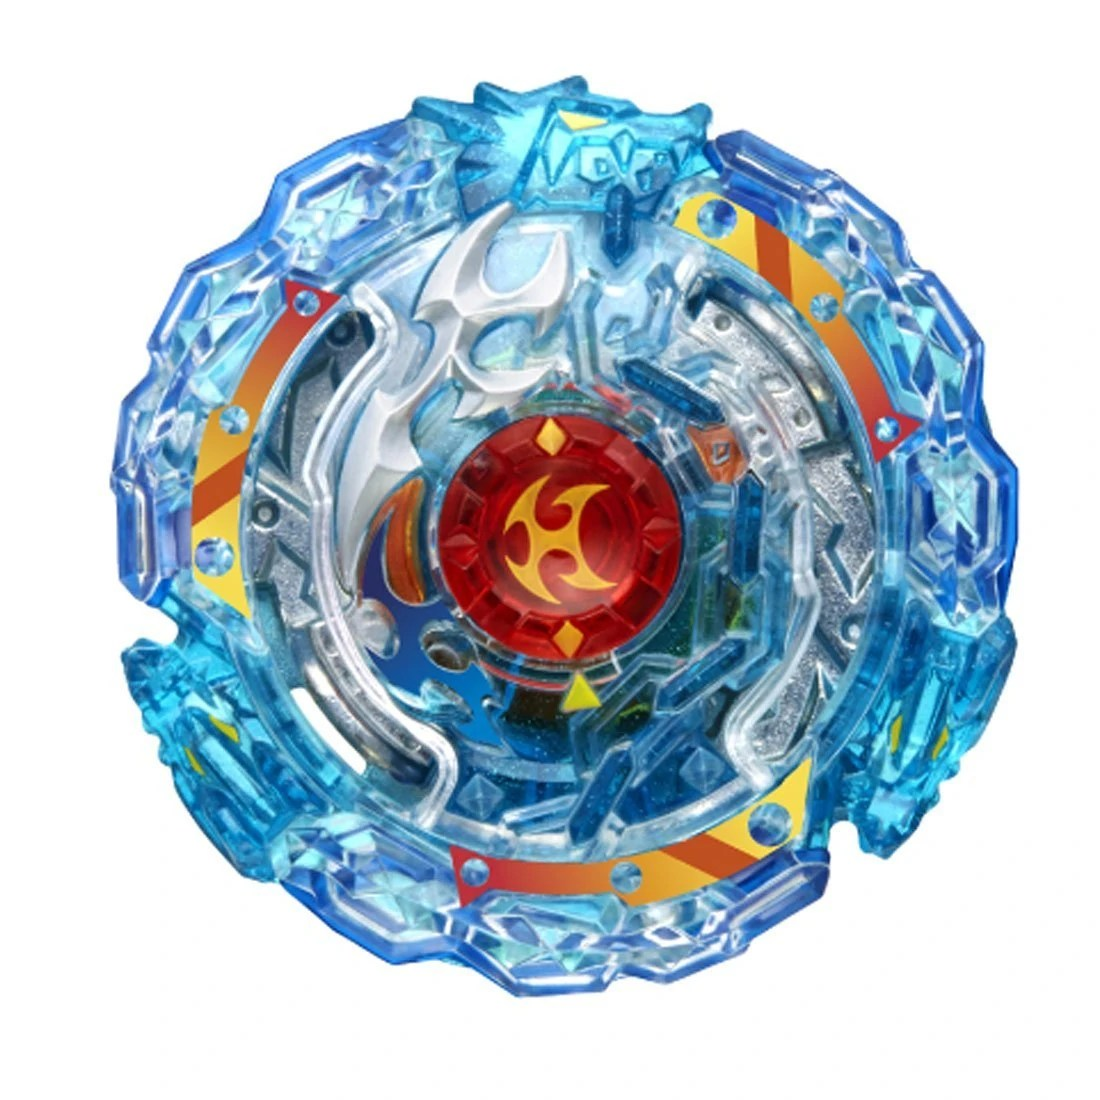 Beyblade Burst Turbo Episodes